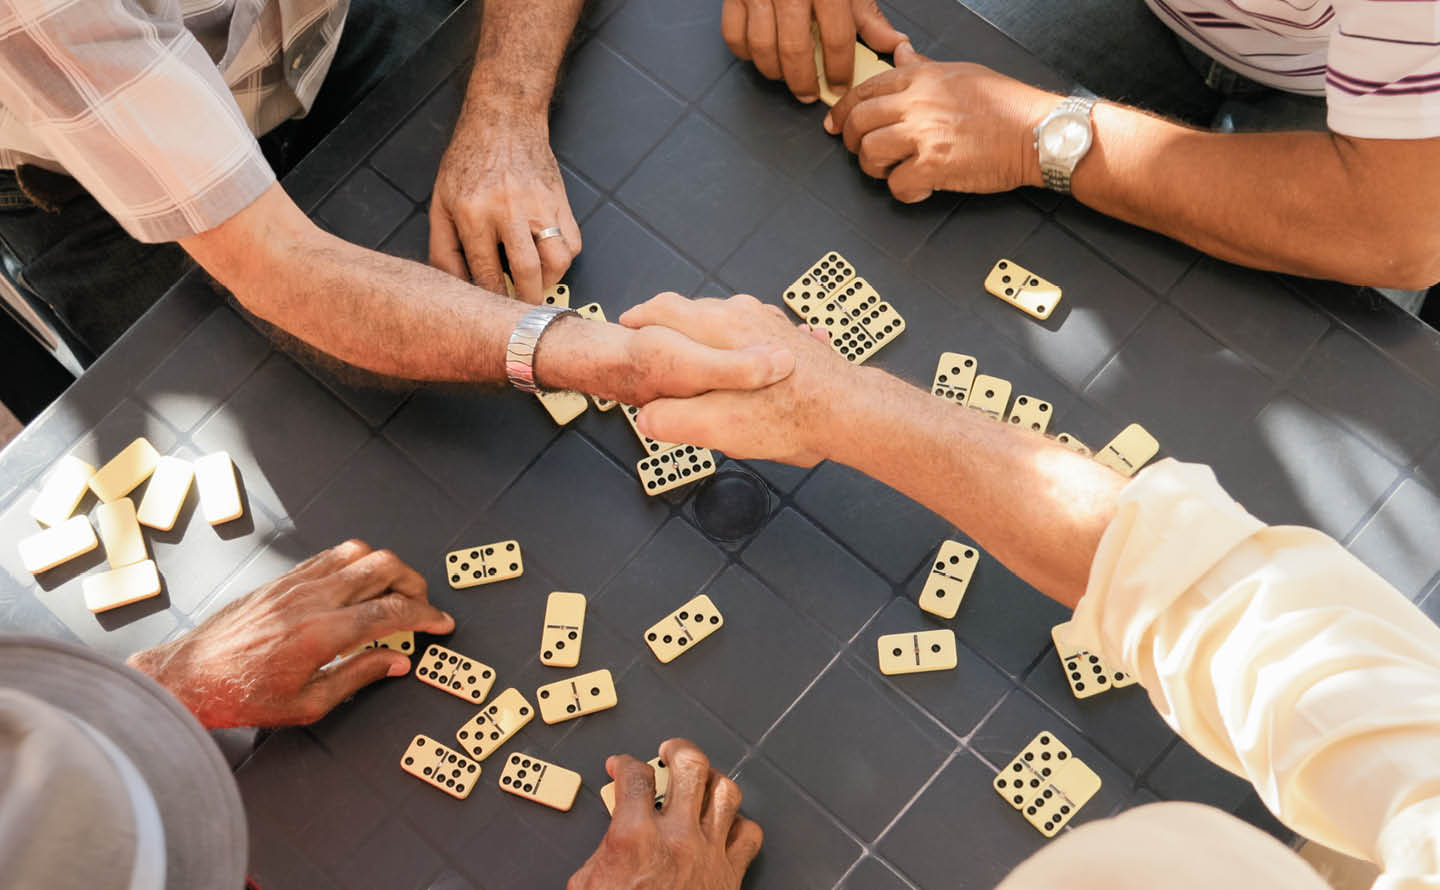 A group of four people playing dominos; two of the players are shaking hands.